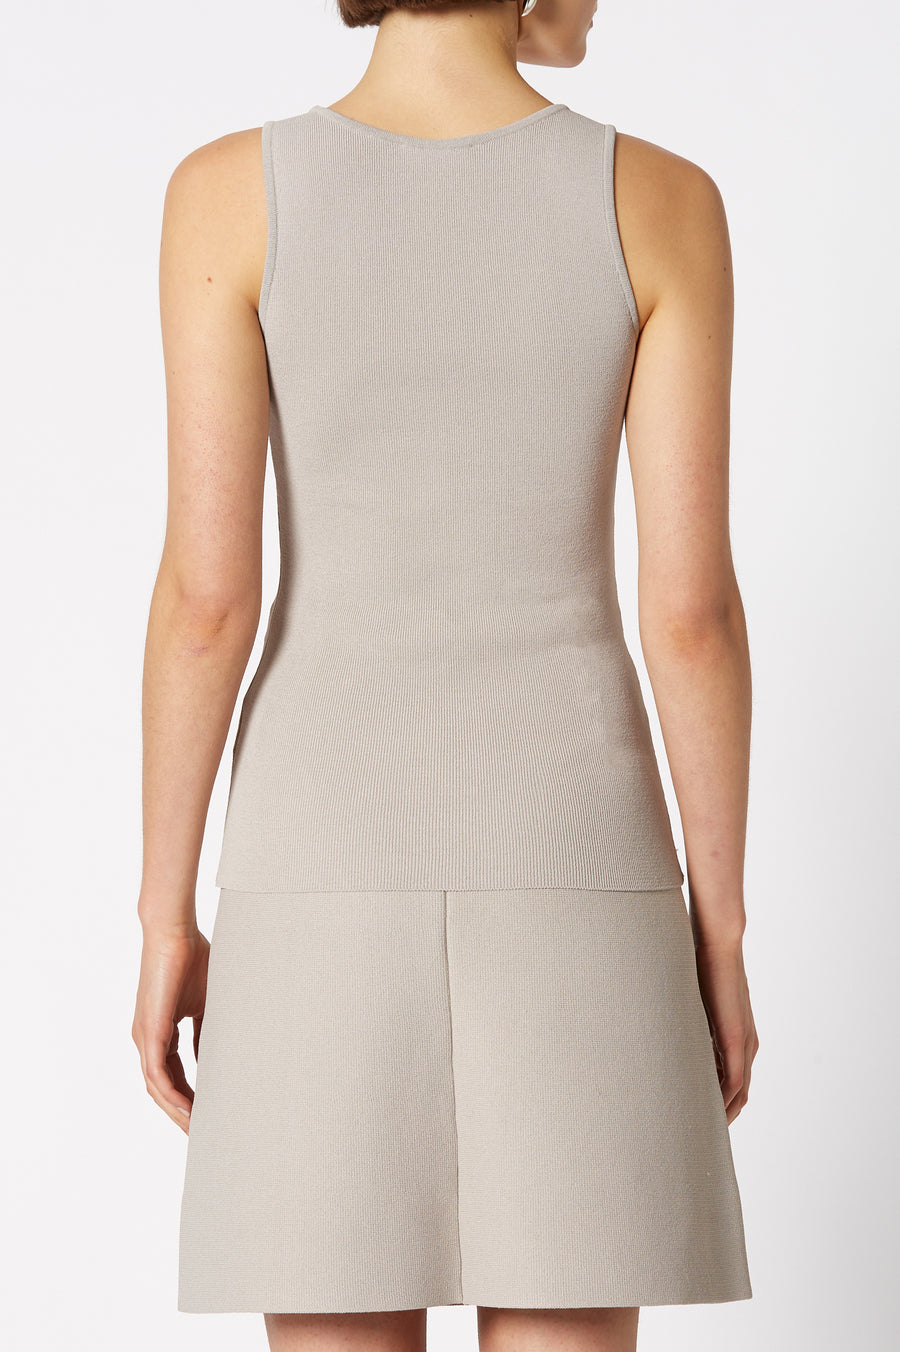 CREPE KNIT SINGLET OYSTER